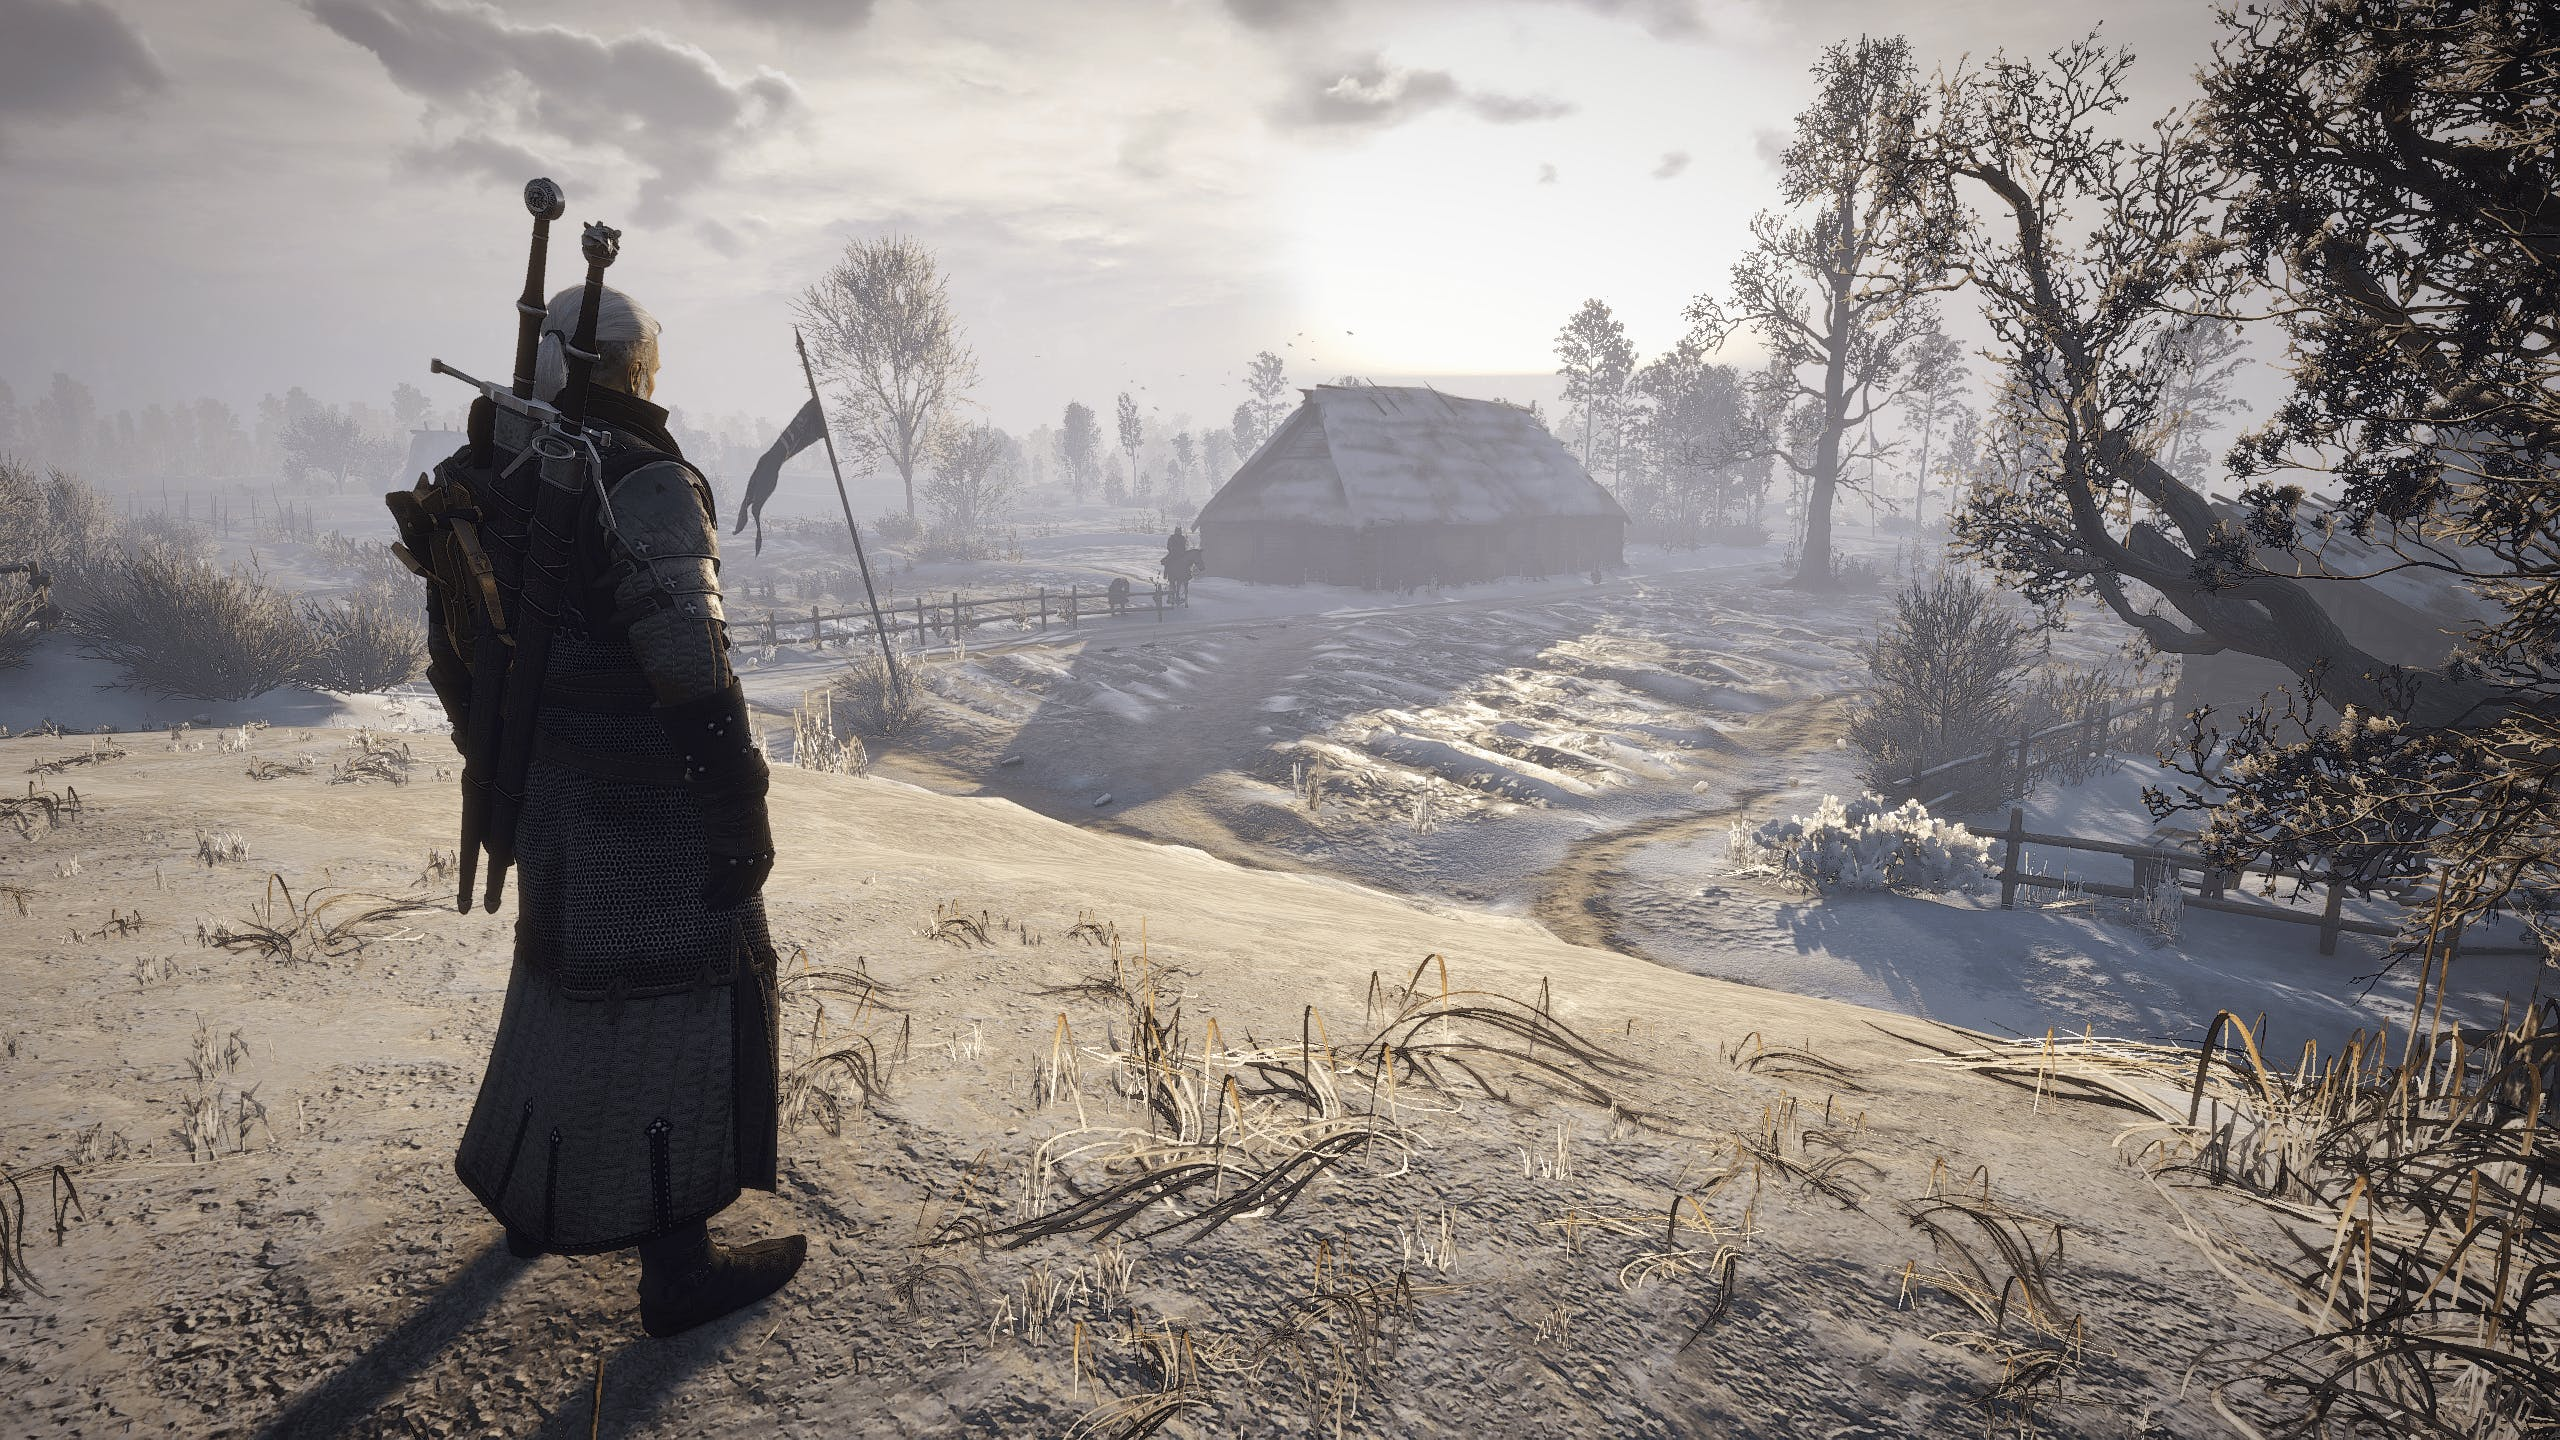 Screenshot 2 The Witcher 3 - Winter